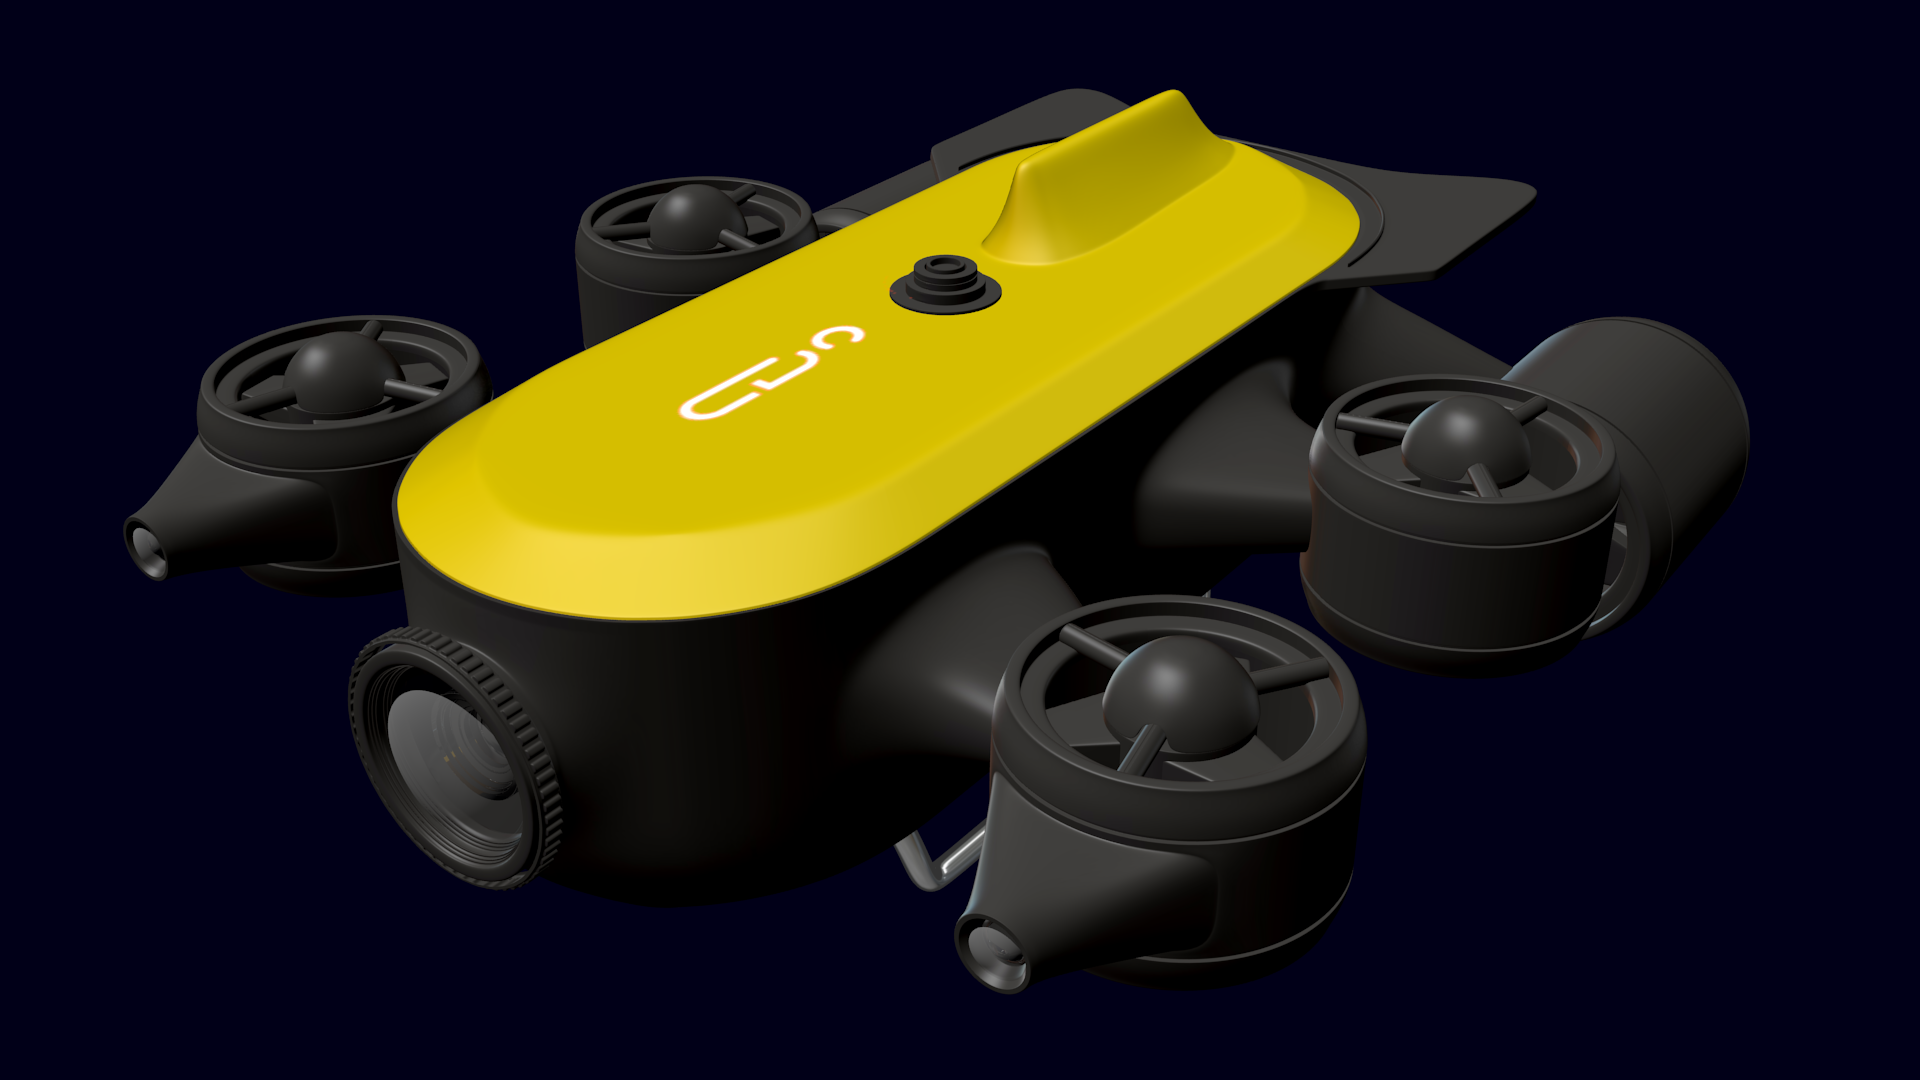 Underwater drone preview image 1